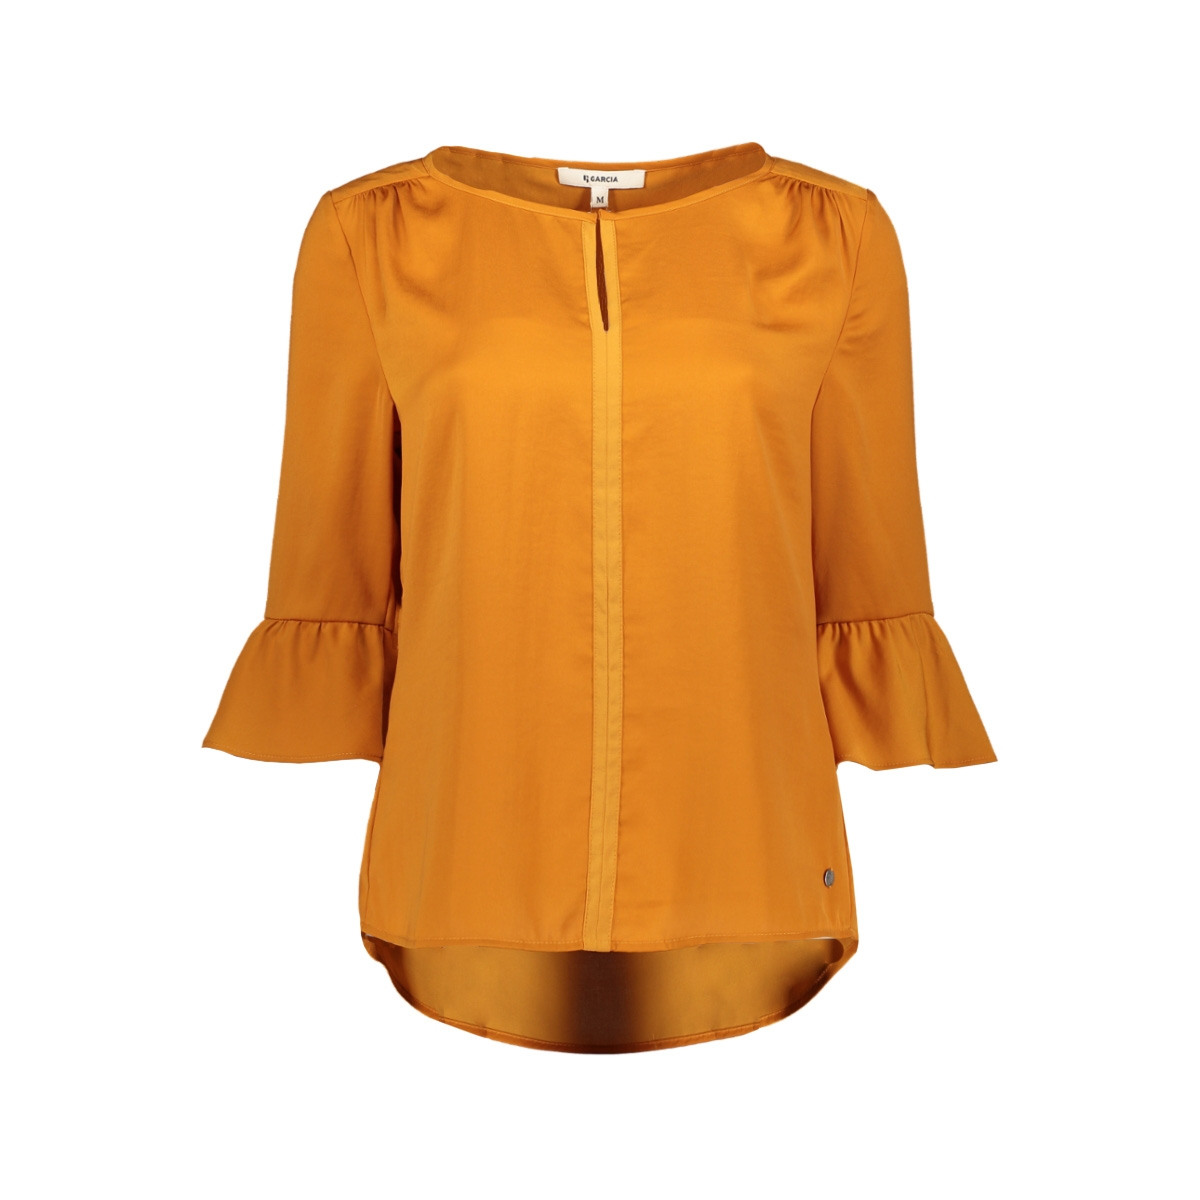 gs900231 garcia blouse 3304 sudan brown